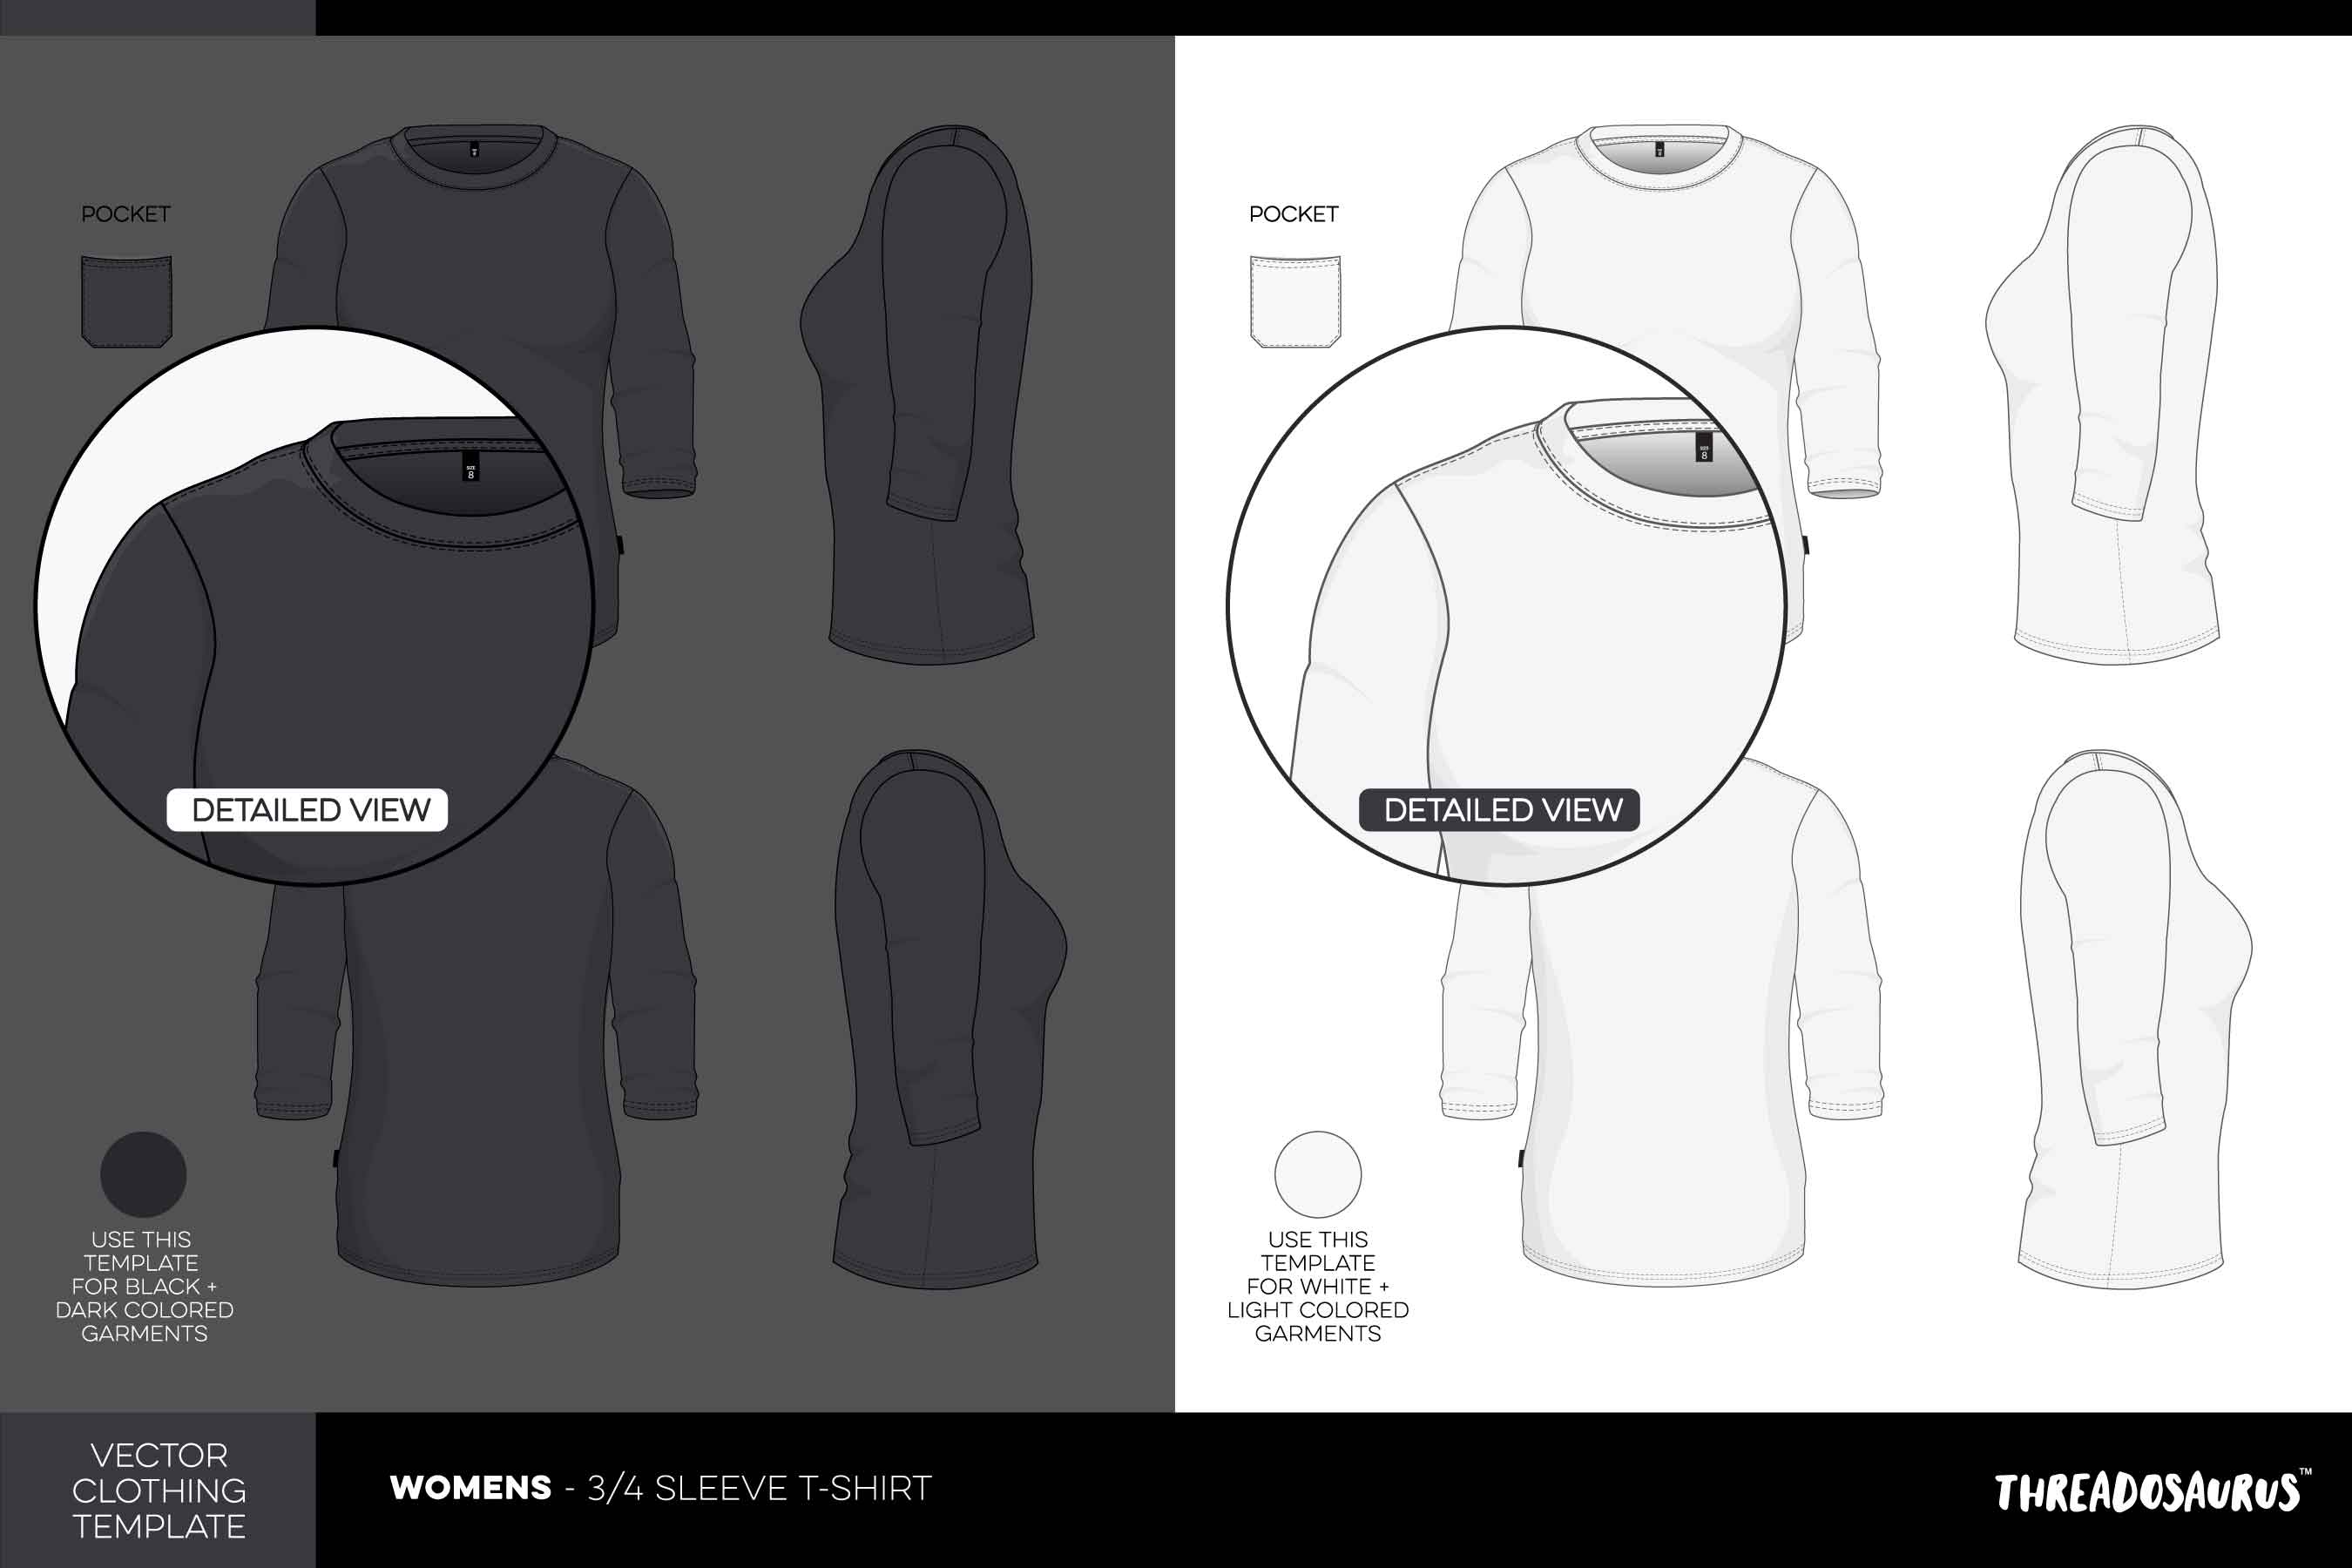 womens 3/4 sleeve t-shirt template vector pack